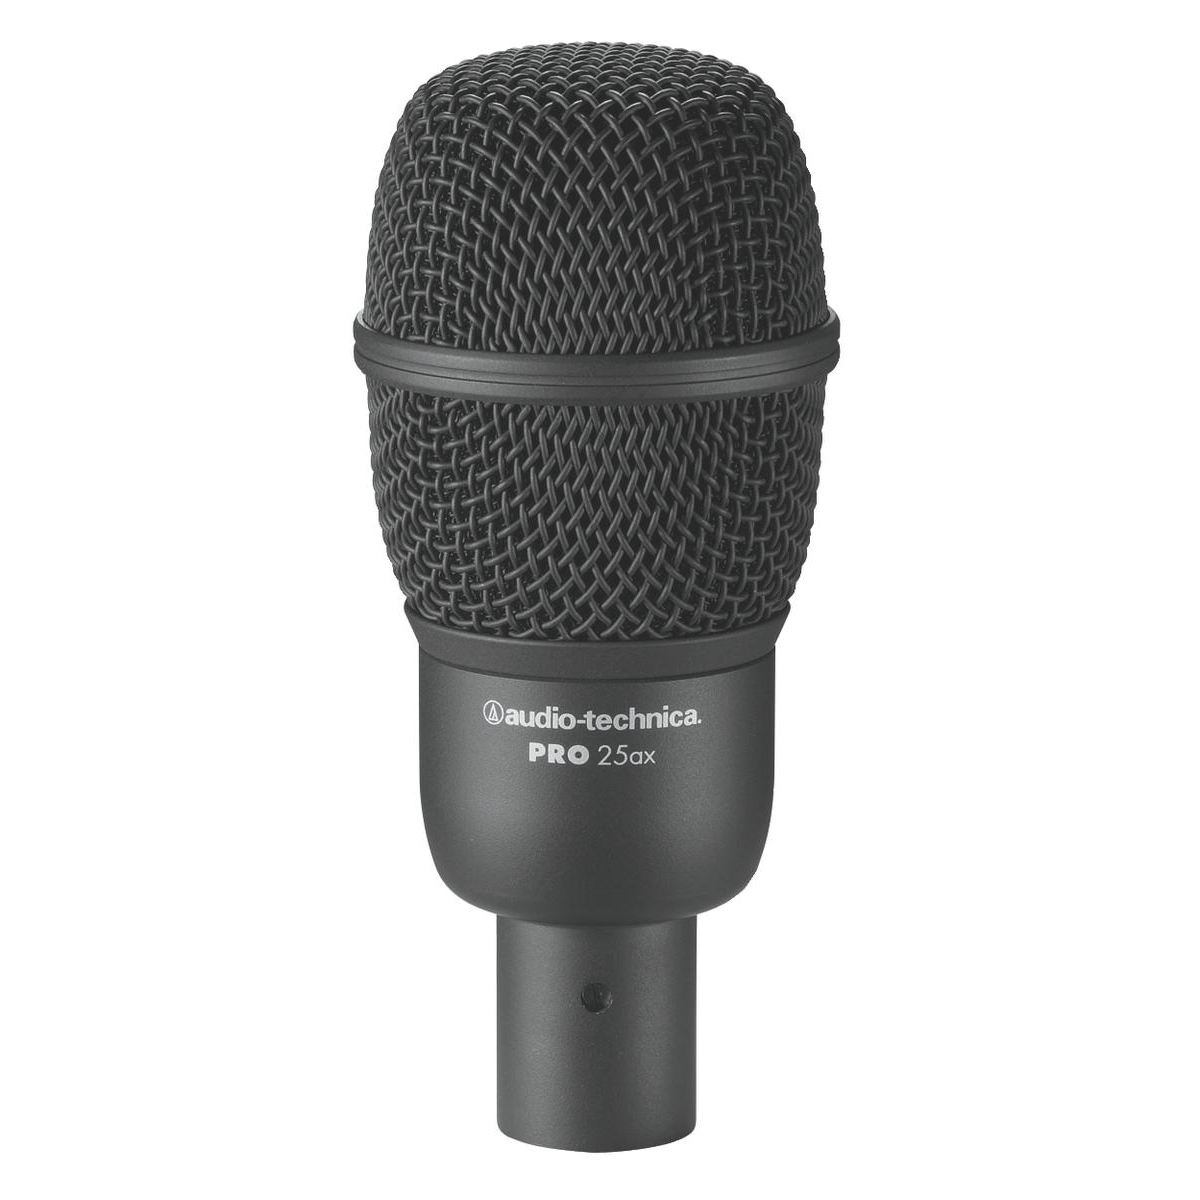 microphone audio technica instrument mic pro audio and sound. Black Bedroom Furniture Sets. Home Design Ideas